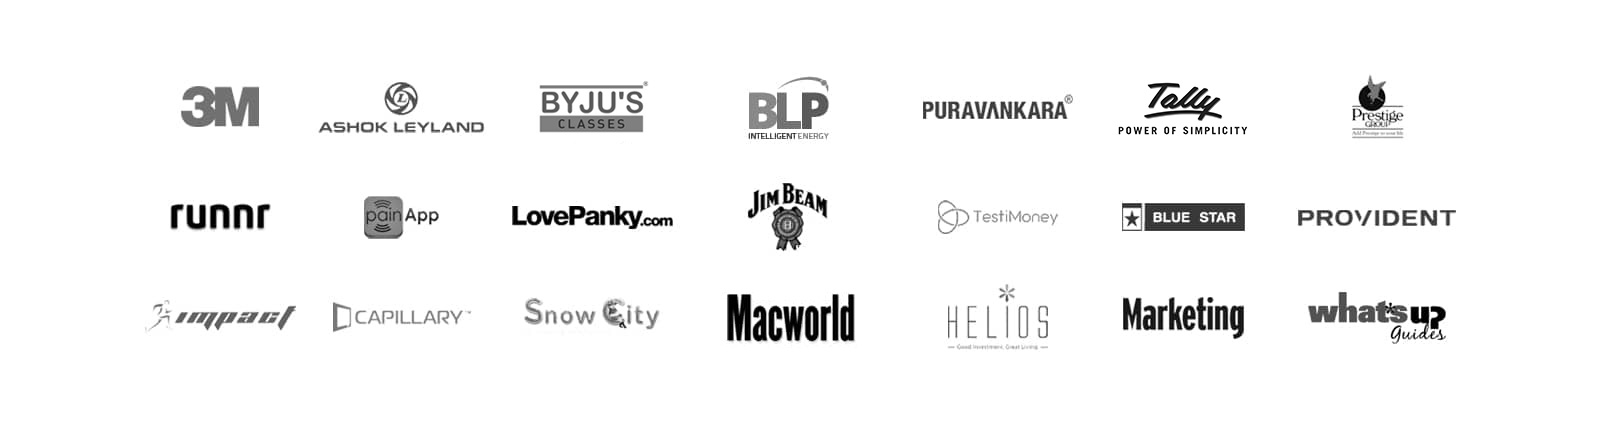 few customers codewave app design and development company bangalore